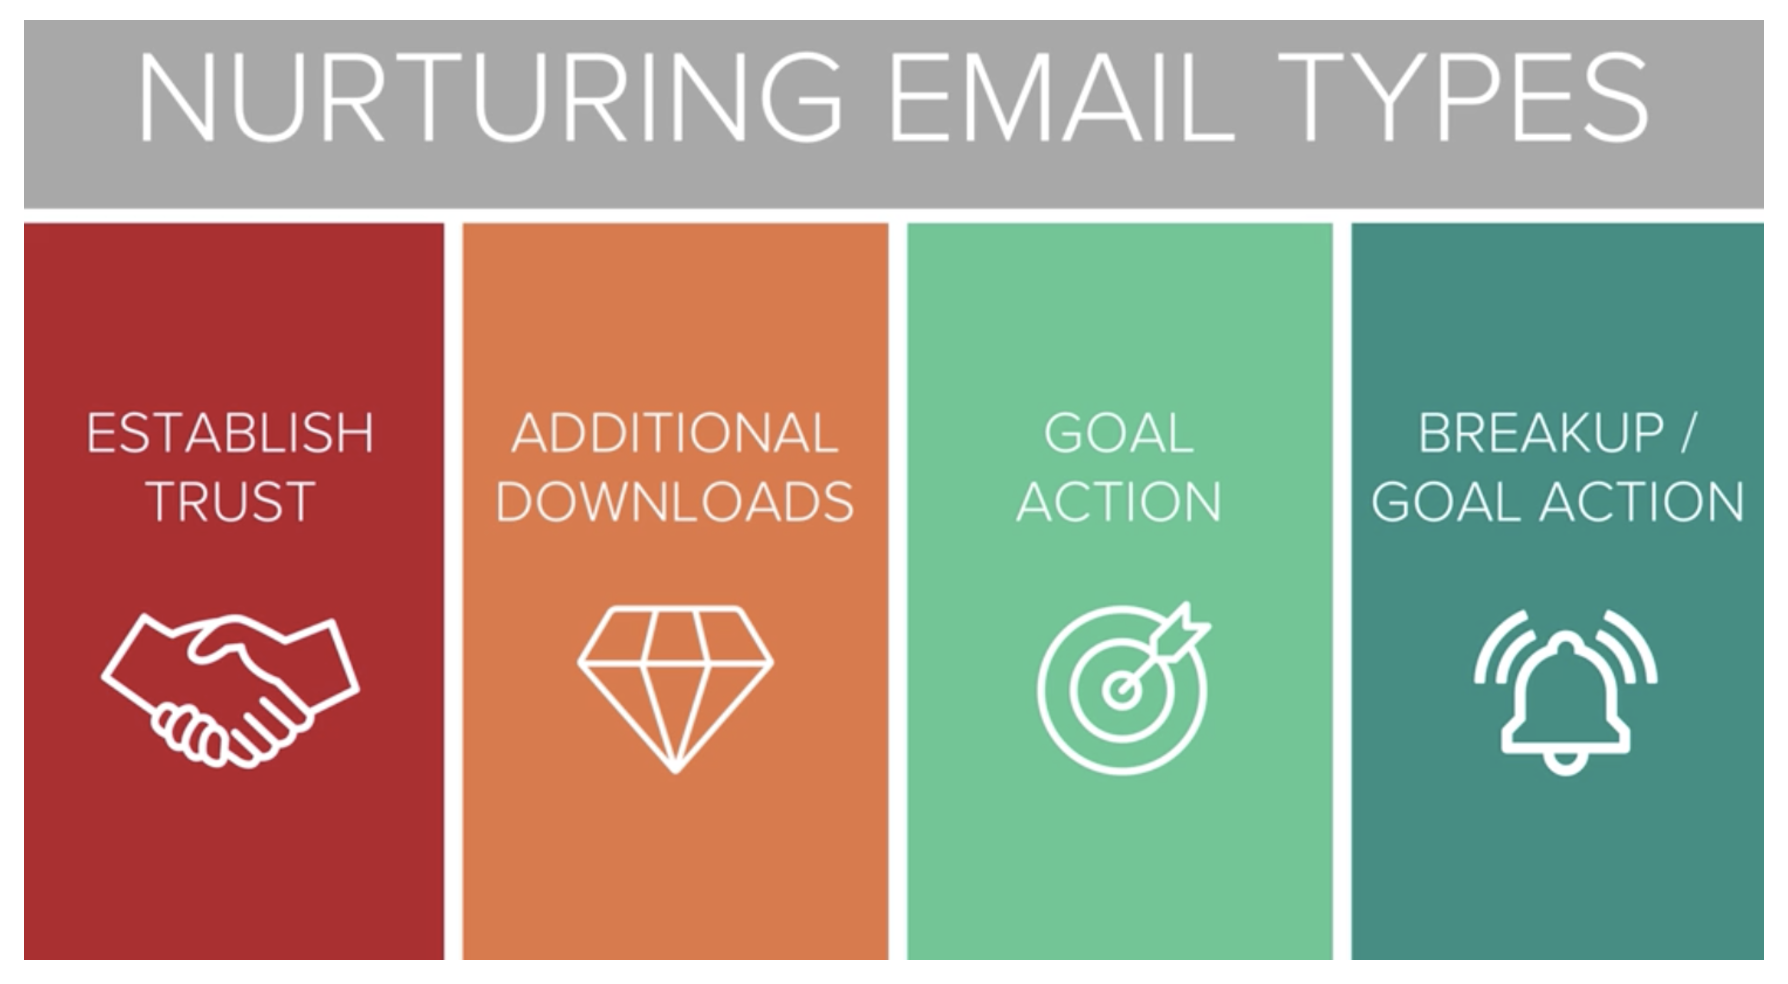 email-types-hubspot.png